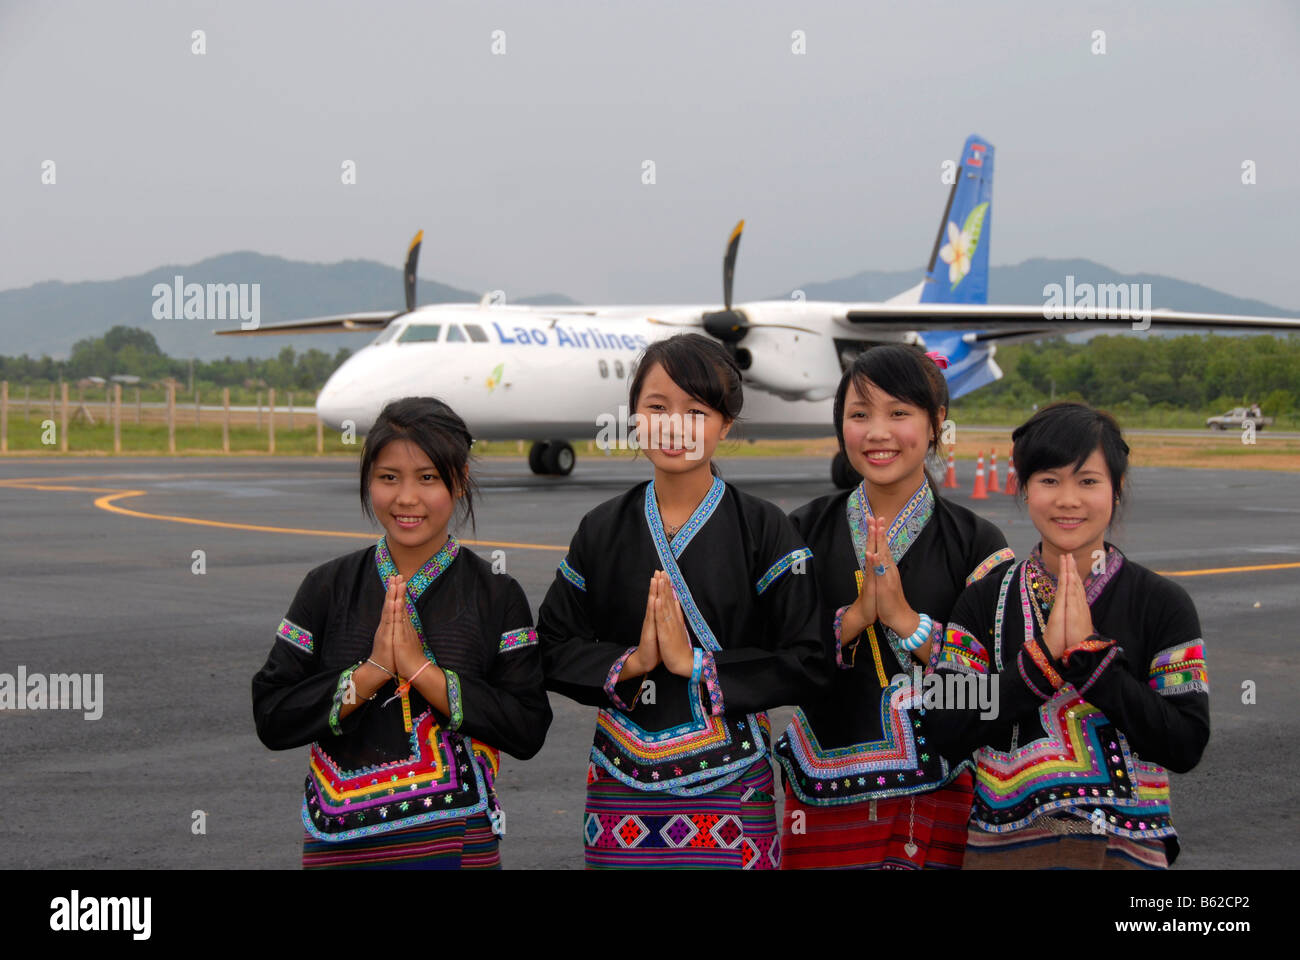 Reception by young Laotians giving the Wei greeting in front of an aircraft of Lao Airlines, Luang Namtha Airport, - Stock Image